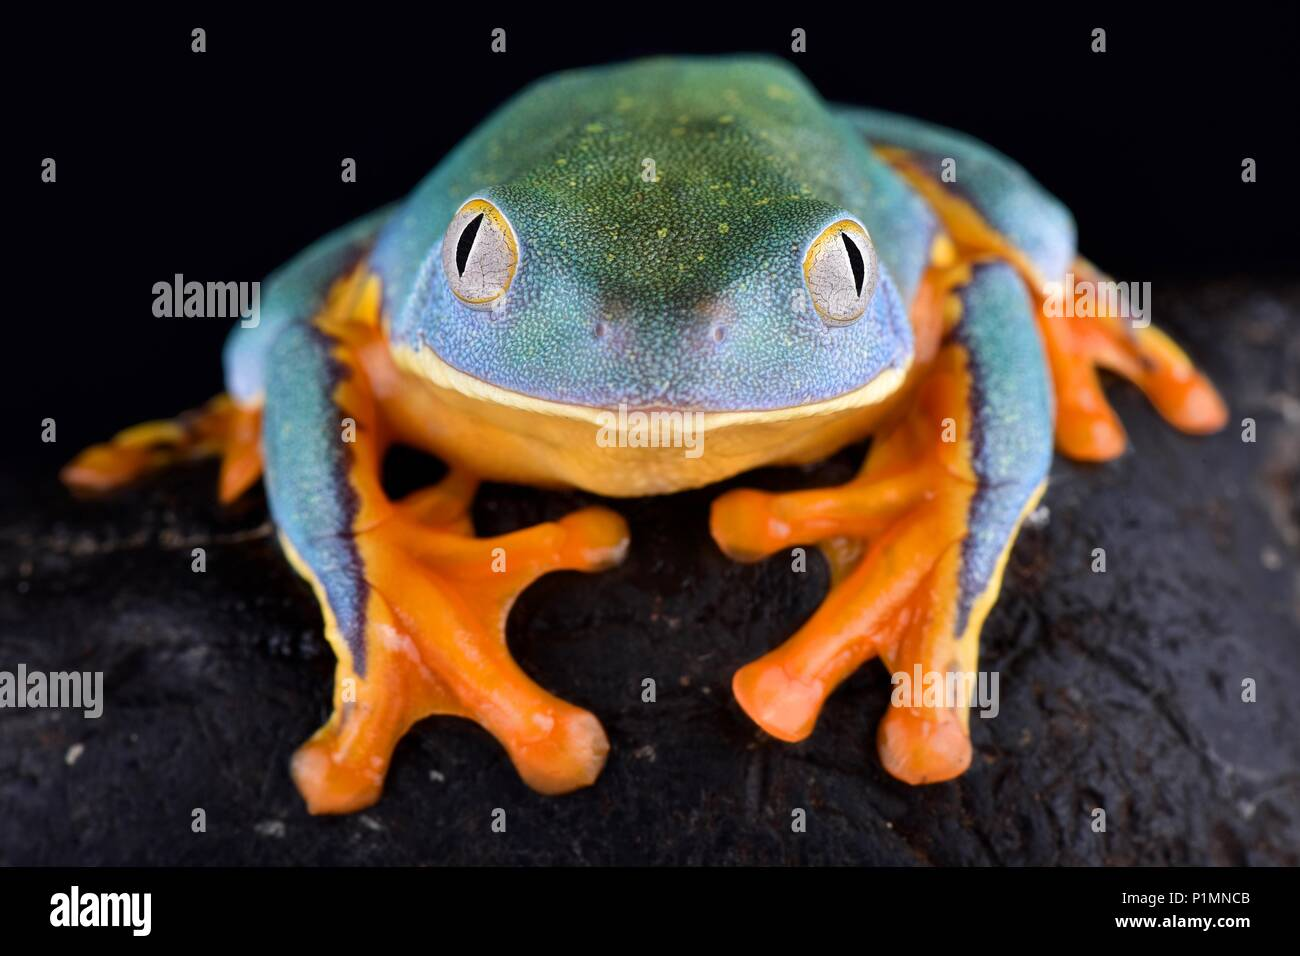 The Splendid leaf frog, Cruziohyla calcarifer, is a cryptic and beautiful tree frog species found from Central into South America. - Stock Image